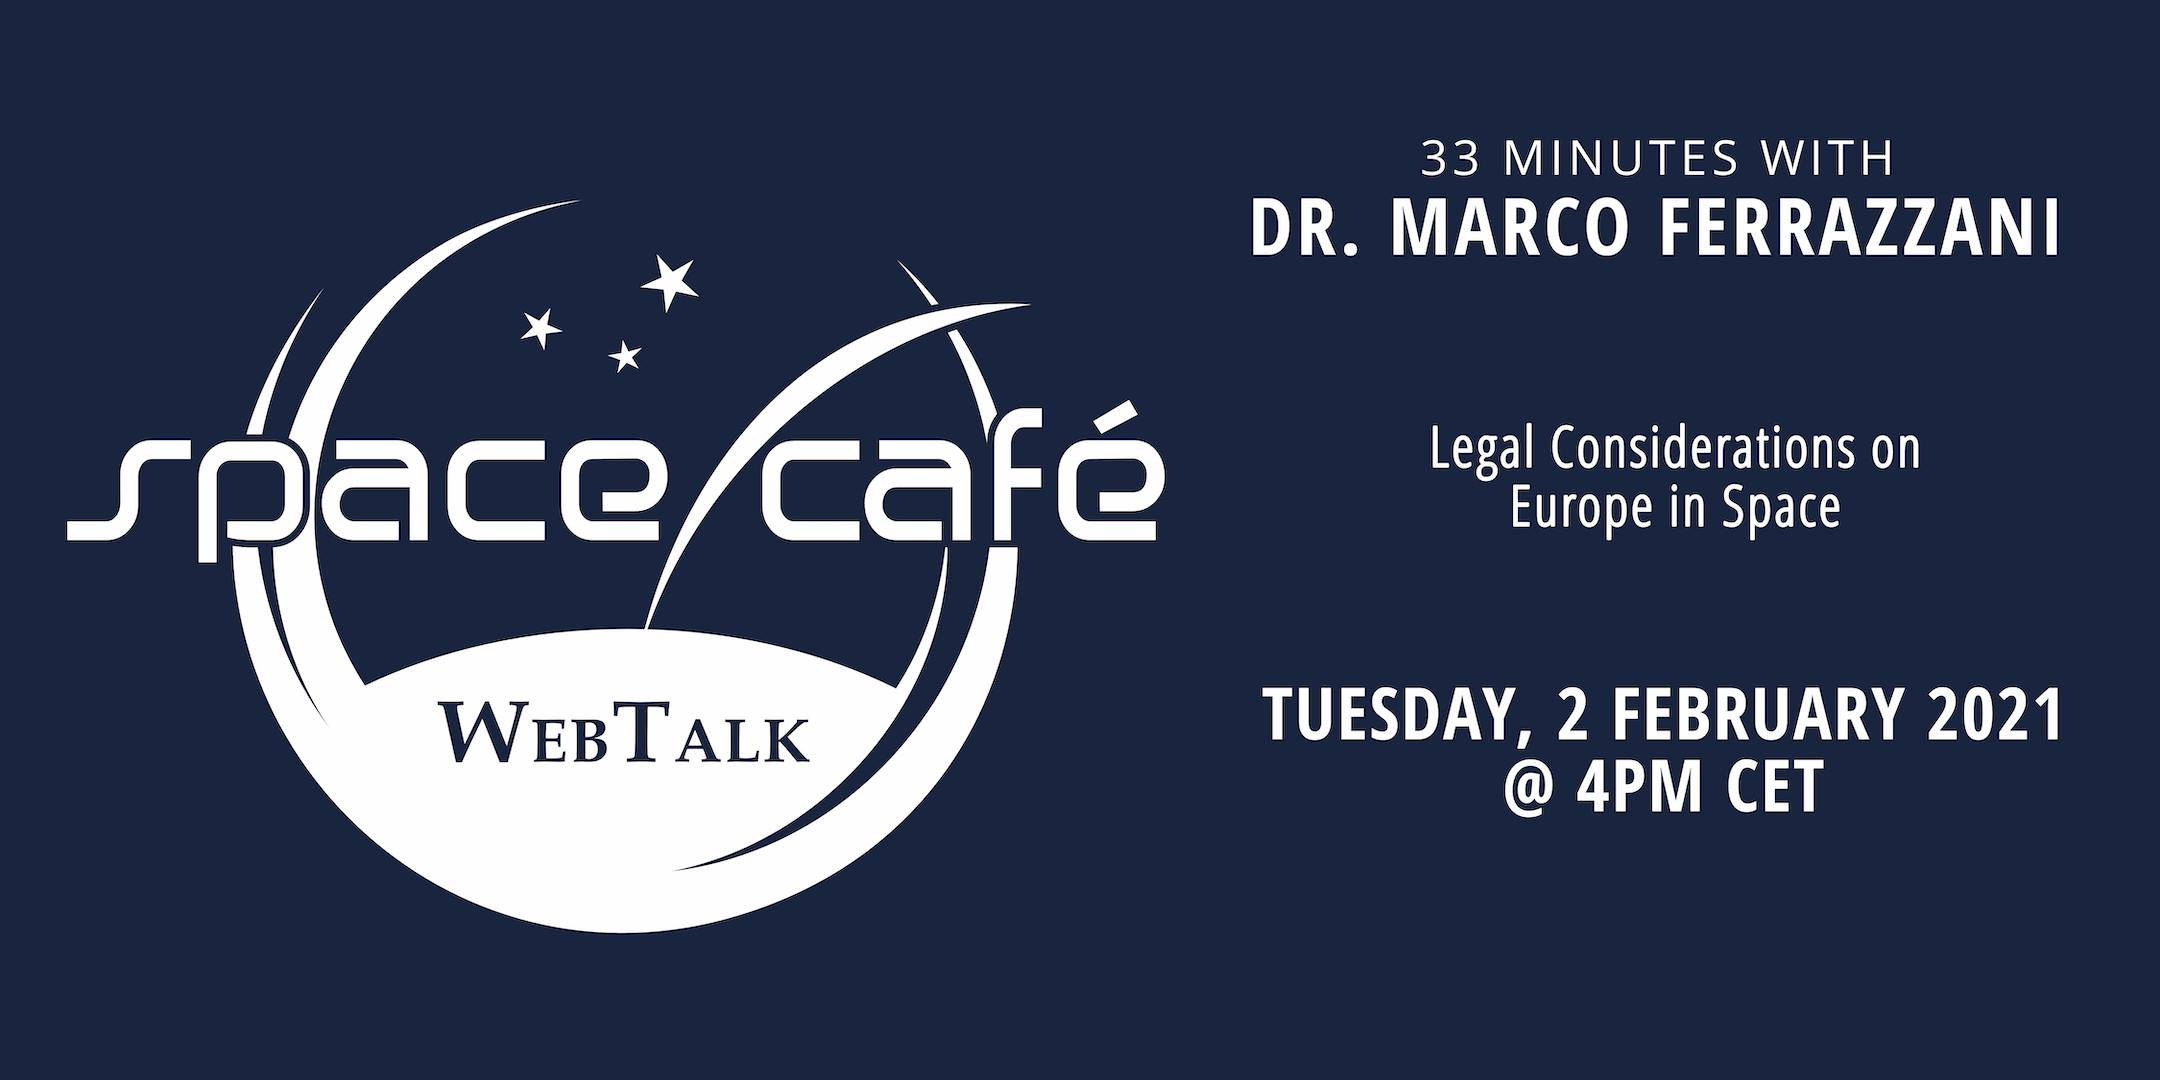 Legal considerations on Europe in space - 33 minutes with Dr. Marco Ferrazzani - Space Café WebTalk @ Online